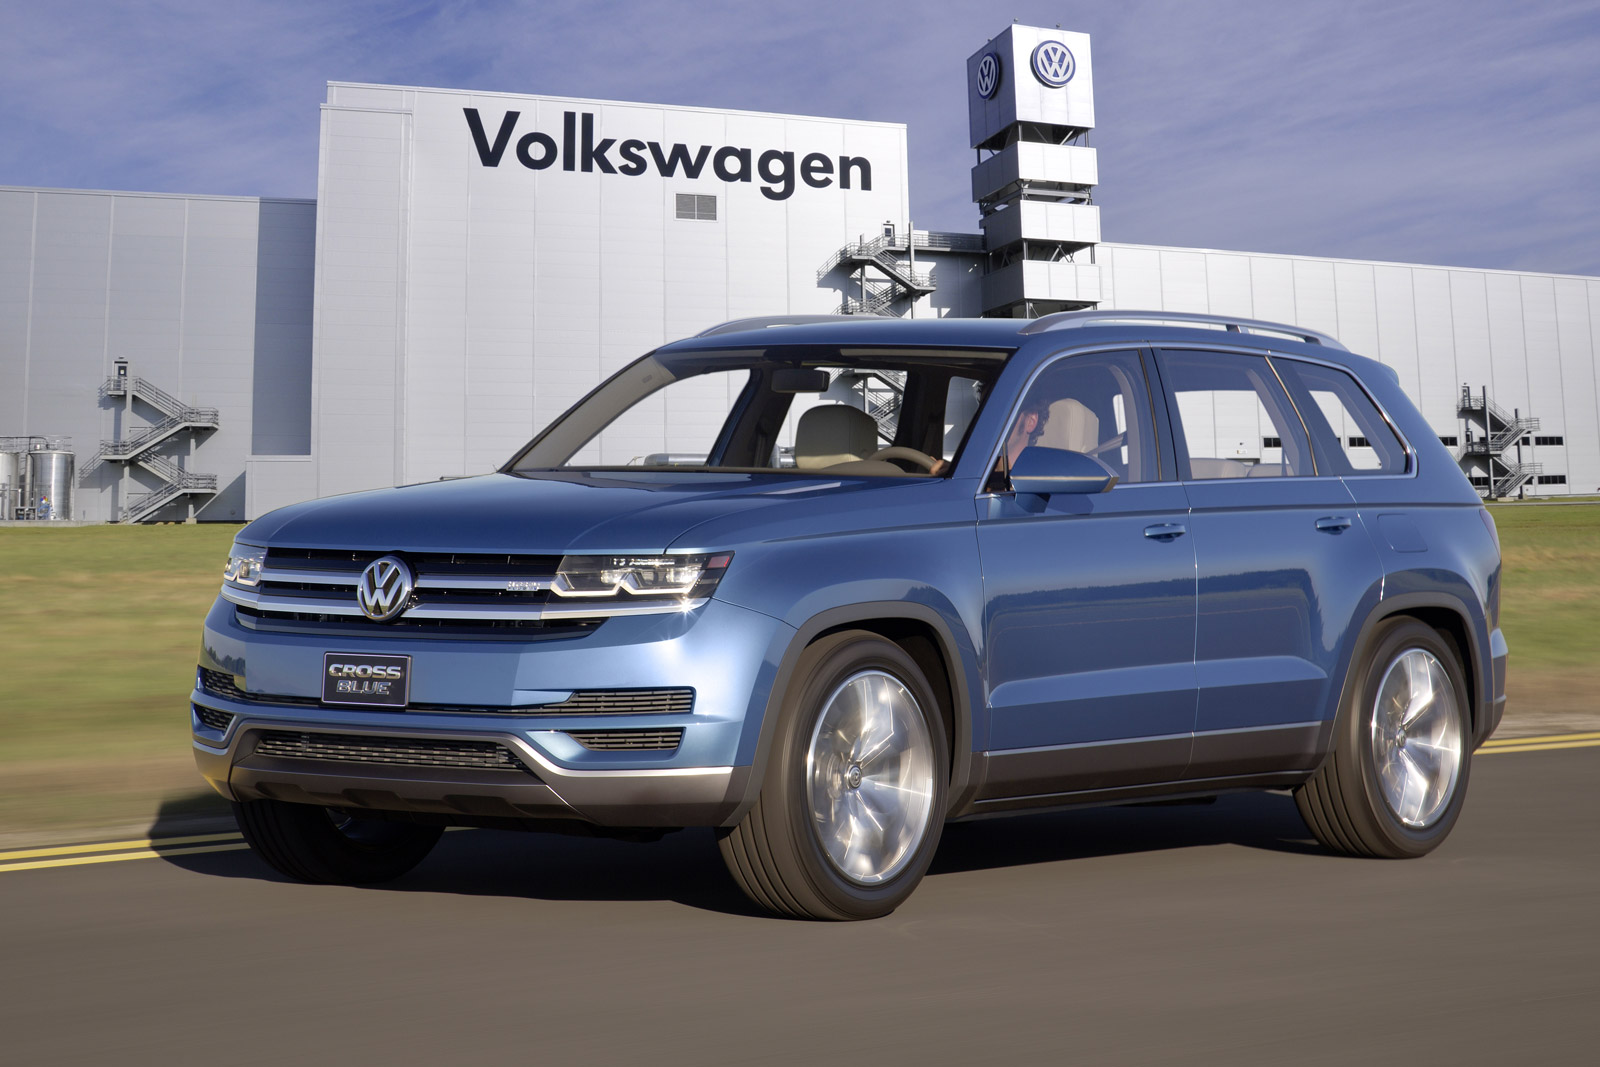 Volkswagen Chattanooga Jobs >> Epa Could Hurt U S Jobs With Diesel Scandal Fines Vw Labor Chief Warns